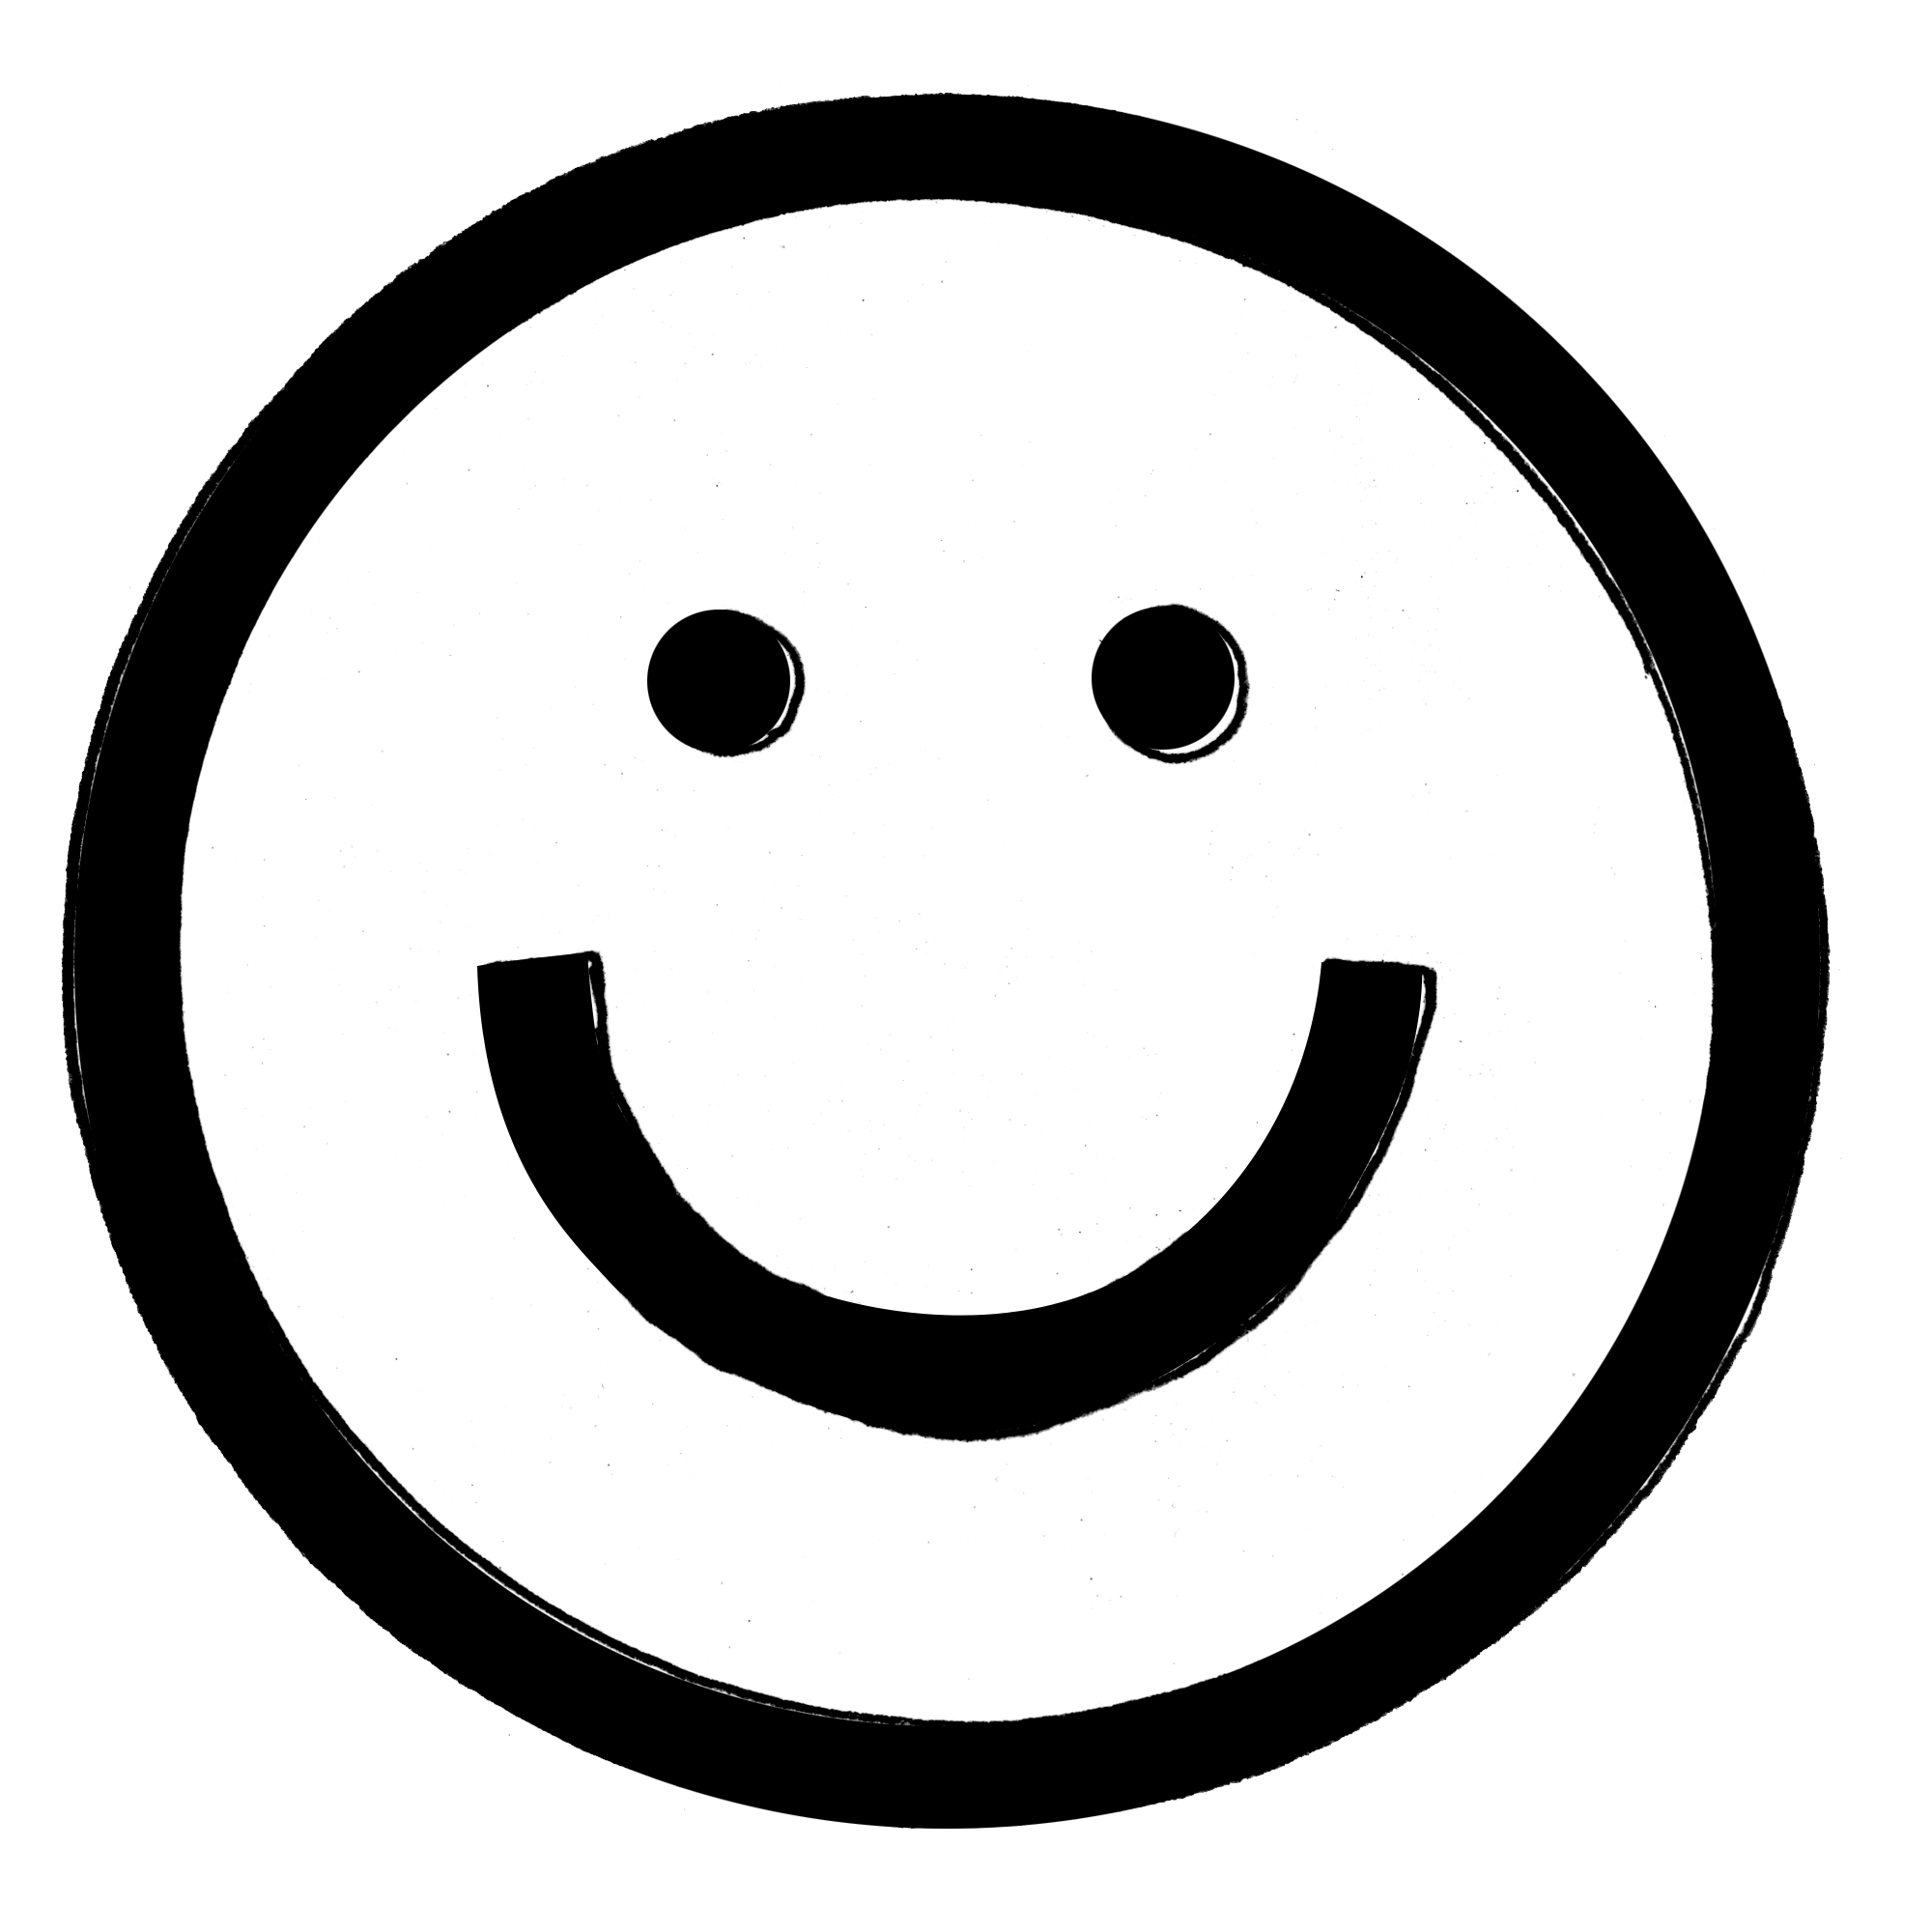 Smiley Face Png 2000 2000 Smiley Smiley Face Symbols